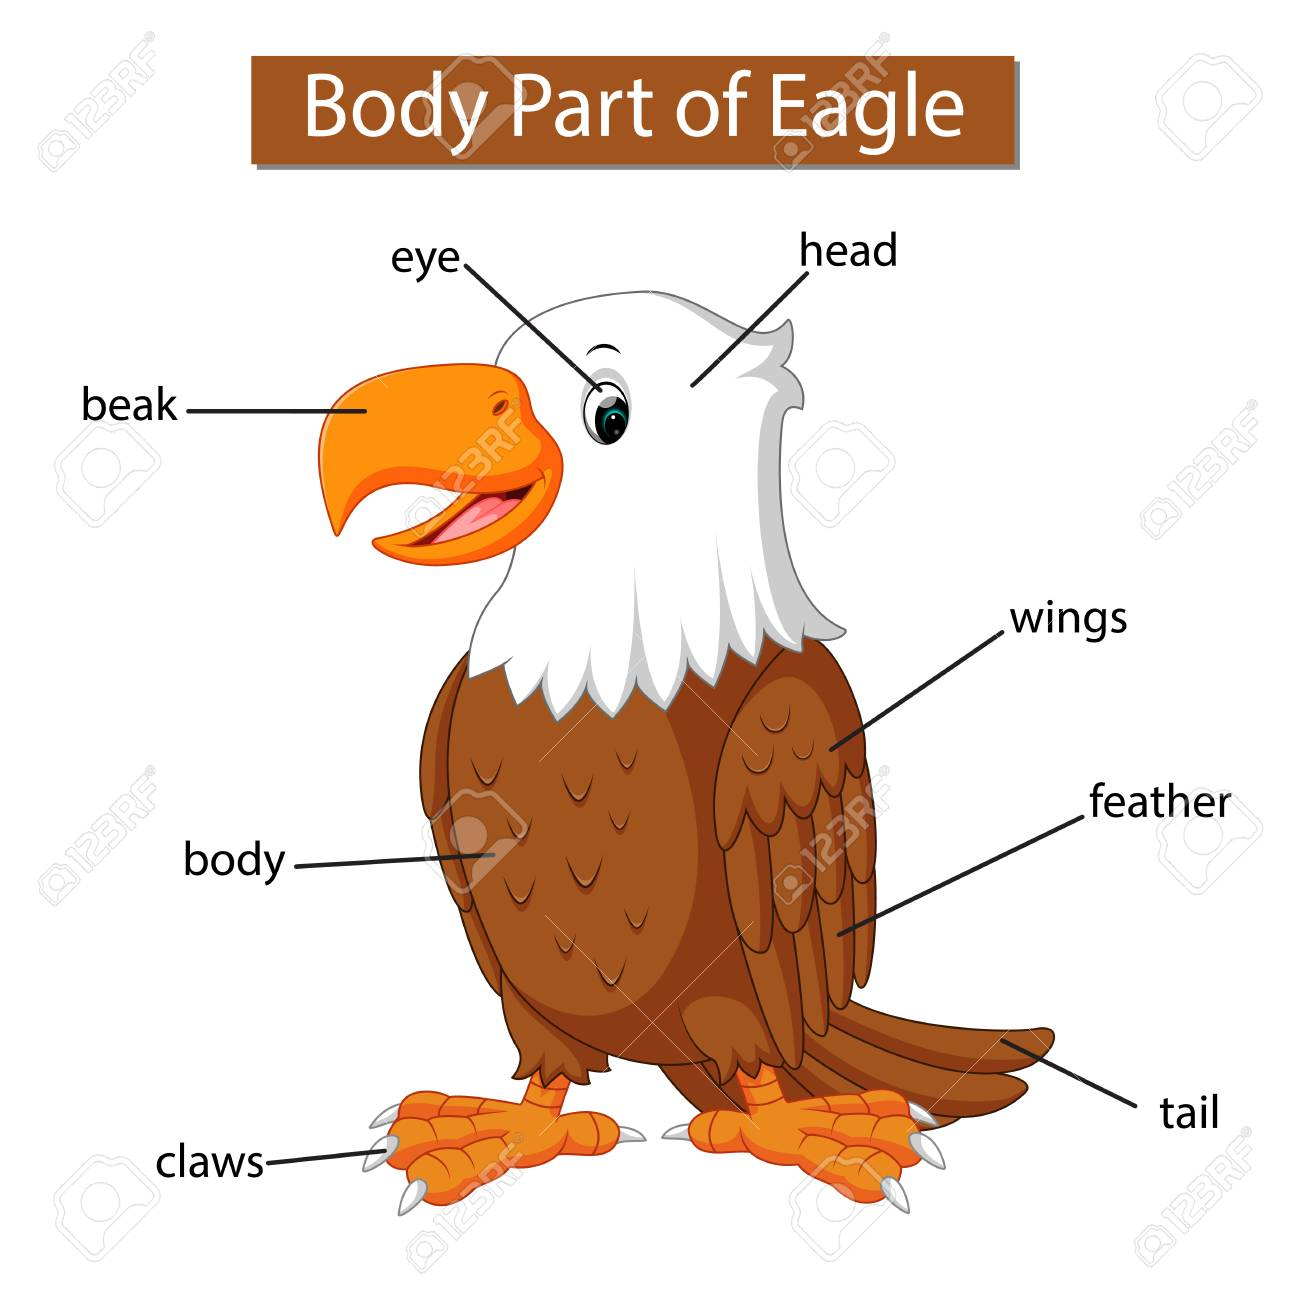 hight resolution of diagram showing body part of eagle stock vector 121073497